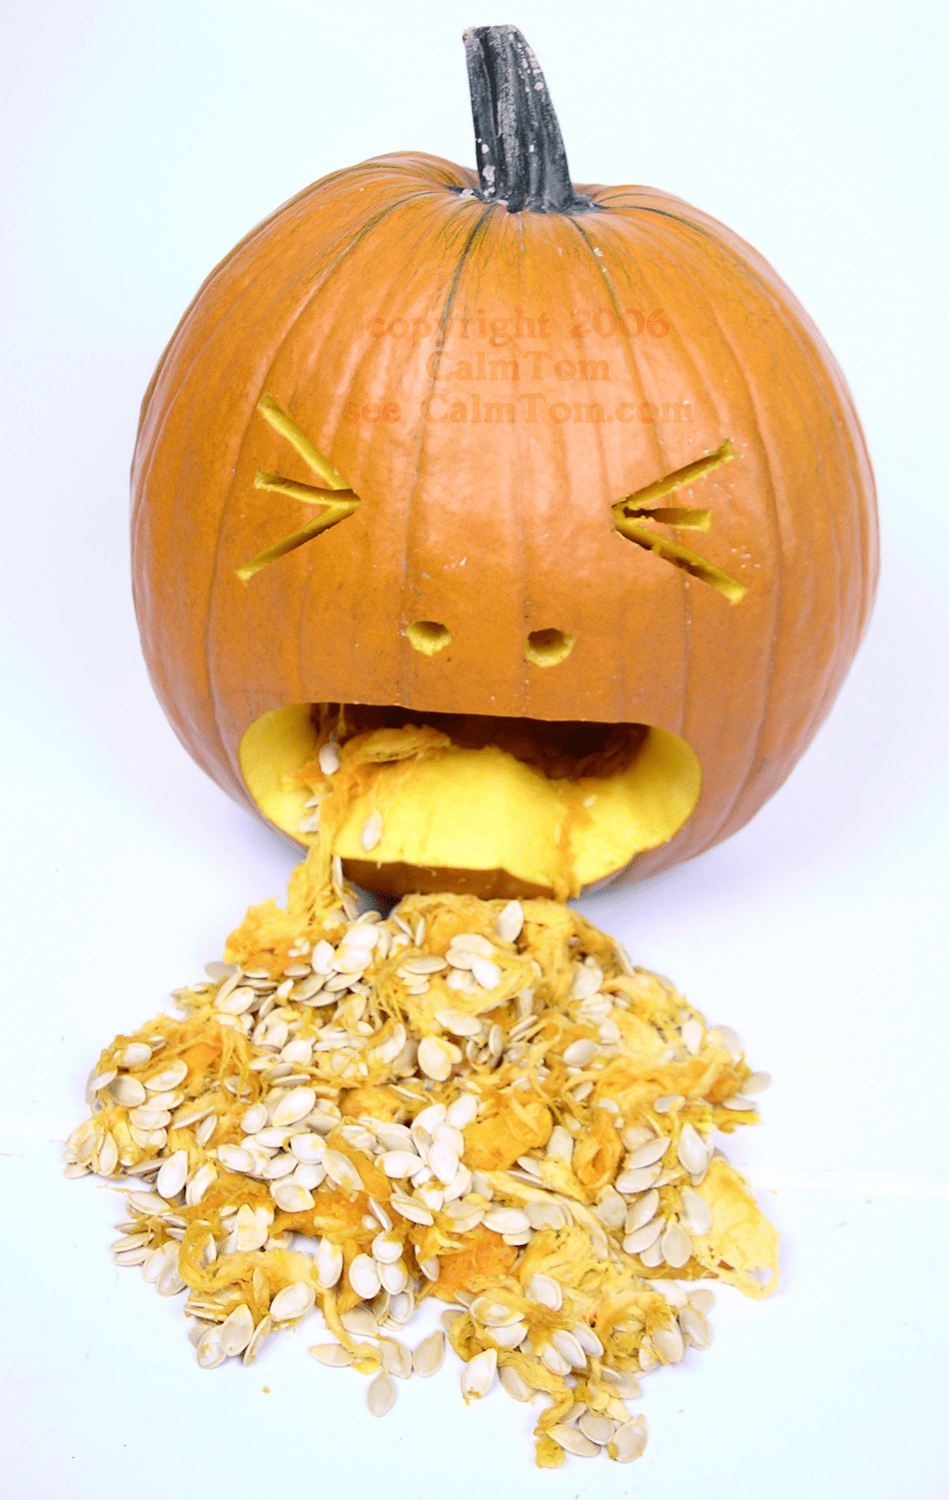 Photo Rights for The Puking Pumpkin and Other Photos